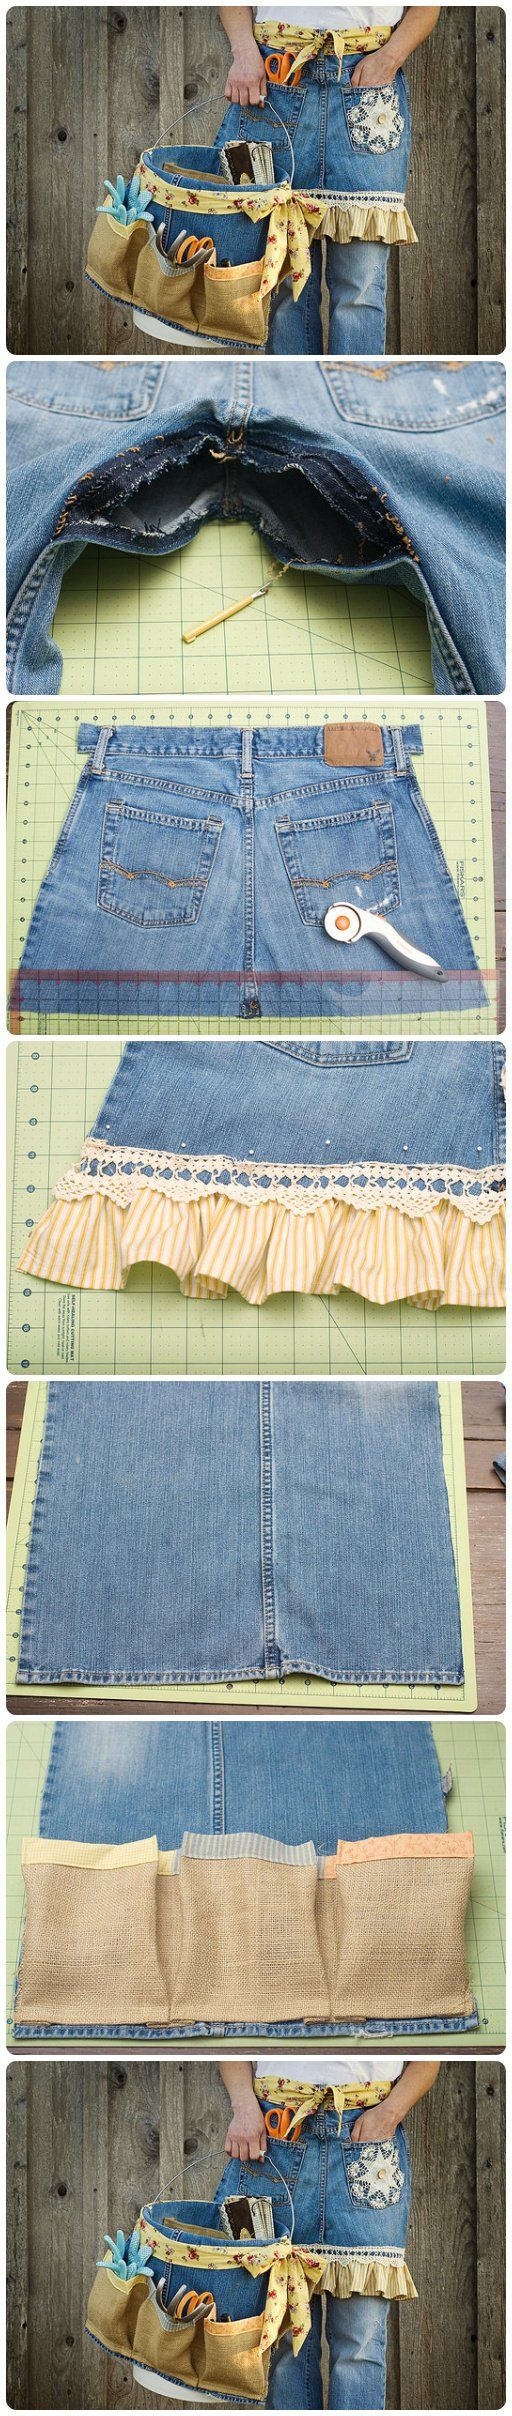 DIY Denim Apron and Basket From Old Jeans